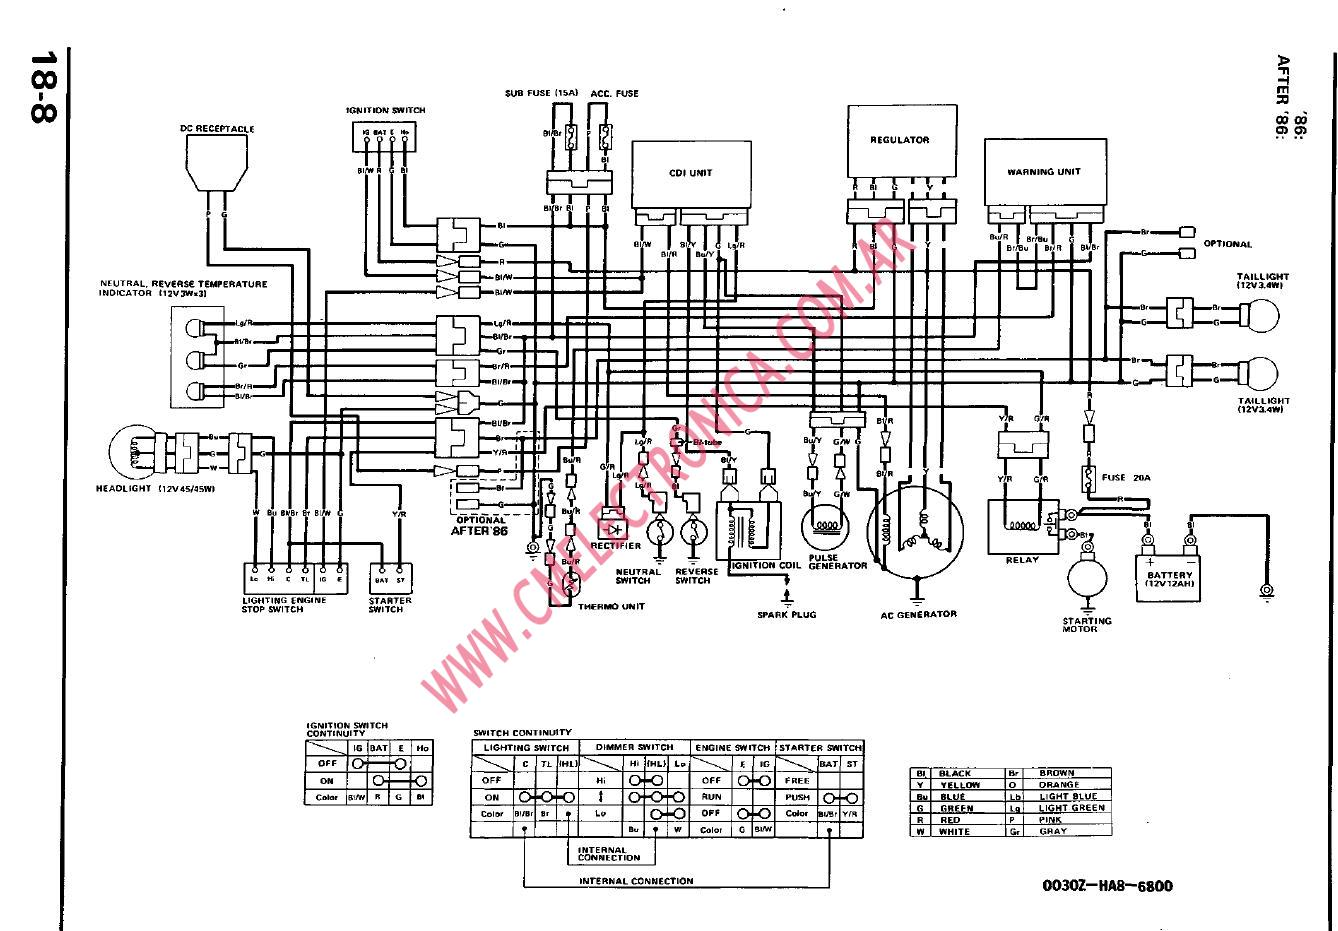 Trx450r Wiring Diagram